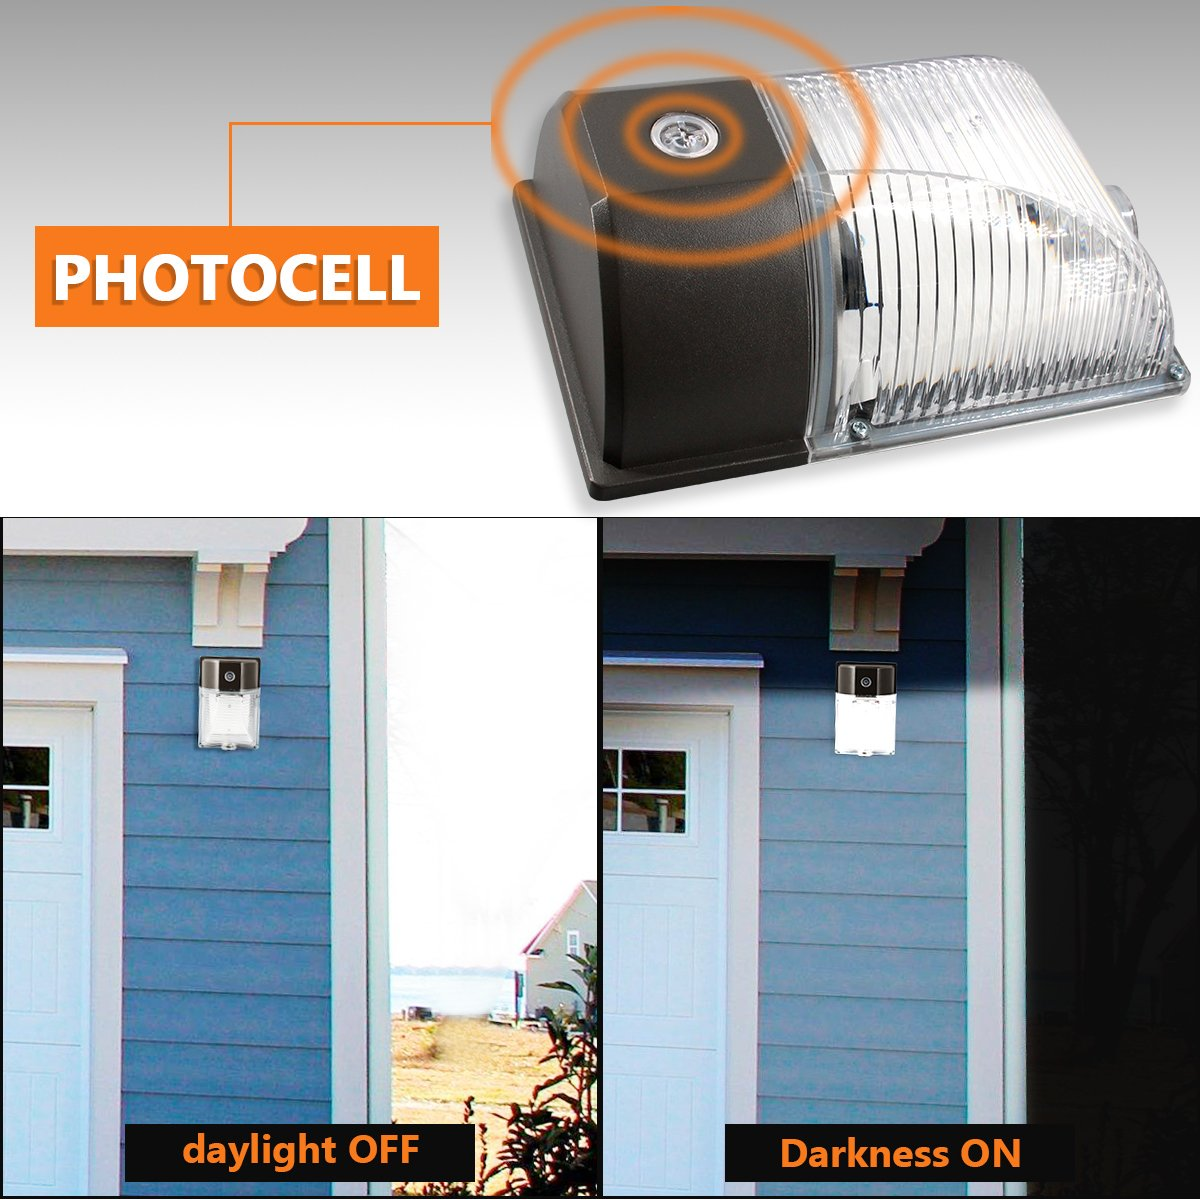 120-277Vac 5000K Daylight Photocell Dusk to ... 26W 3000LM LED Wall Pack Light